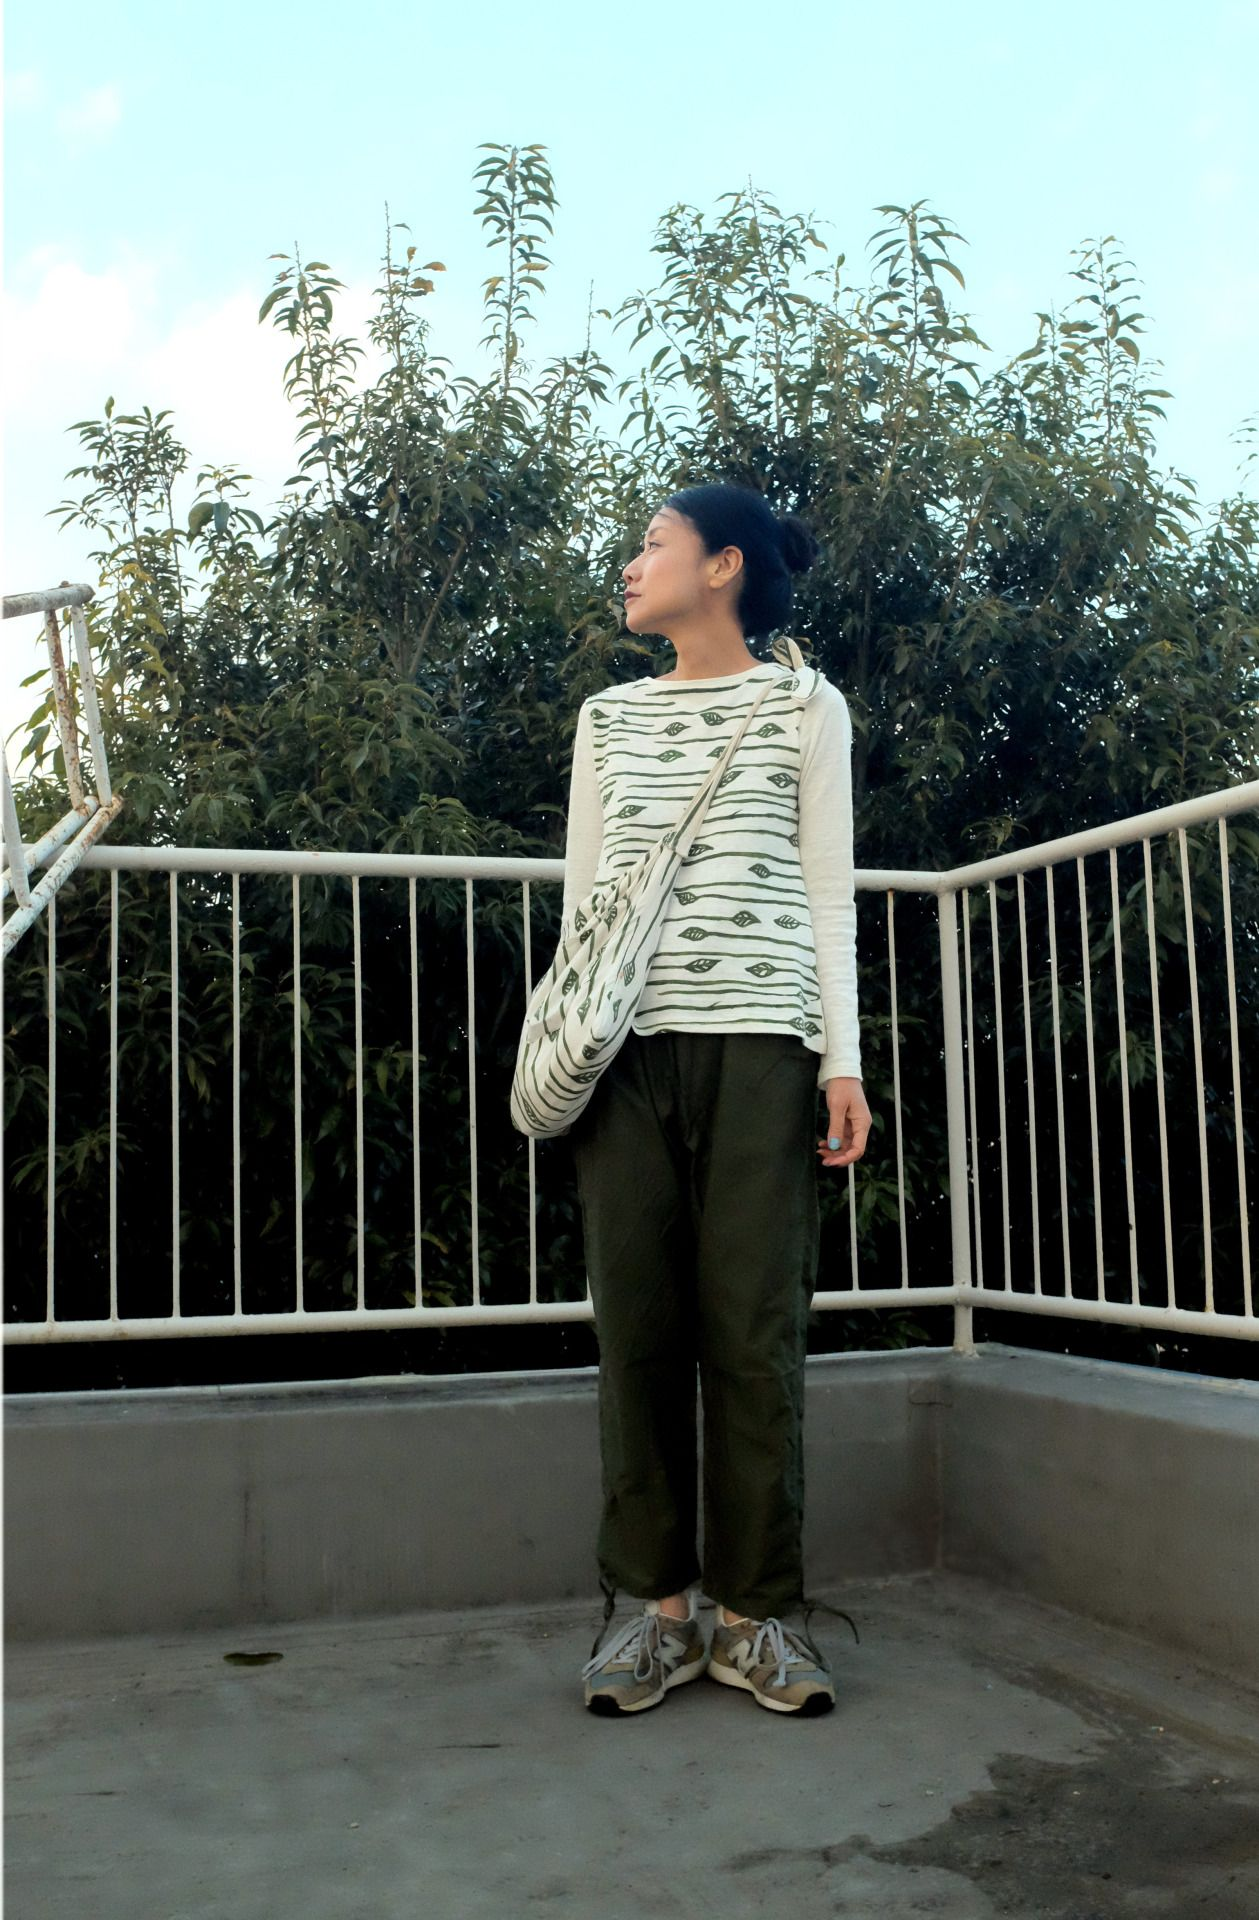 75clothes by studio75.2015 S/S New. flag pants & Border Leaf BagSmall Circle of Friends Satsuki designs. http://75clothes.tumblr.comhttp://www.75clothes.com/ https://www.facebook.com/75clothes http://www.scof75.com